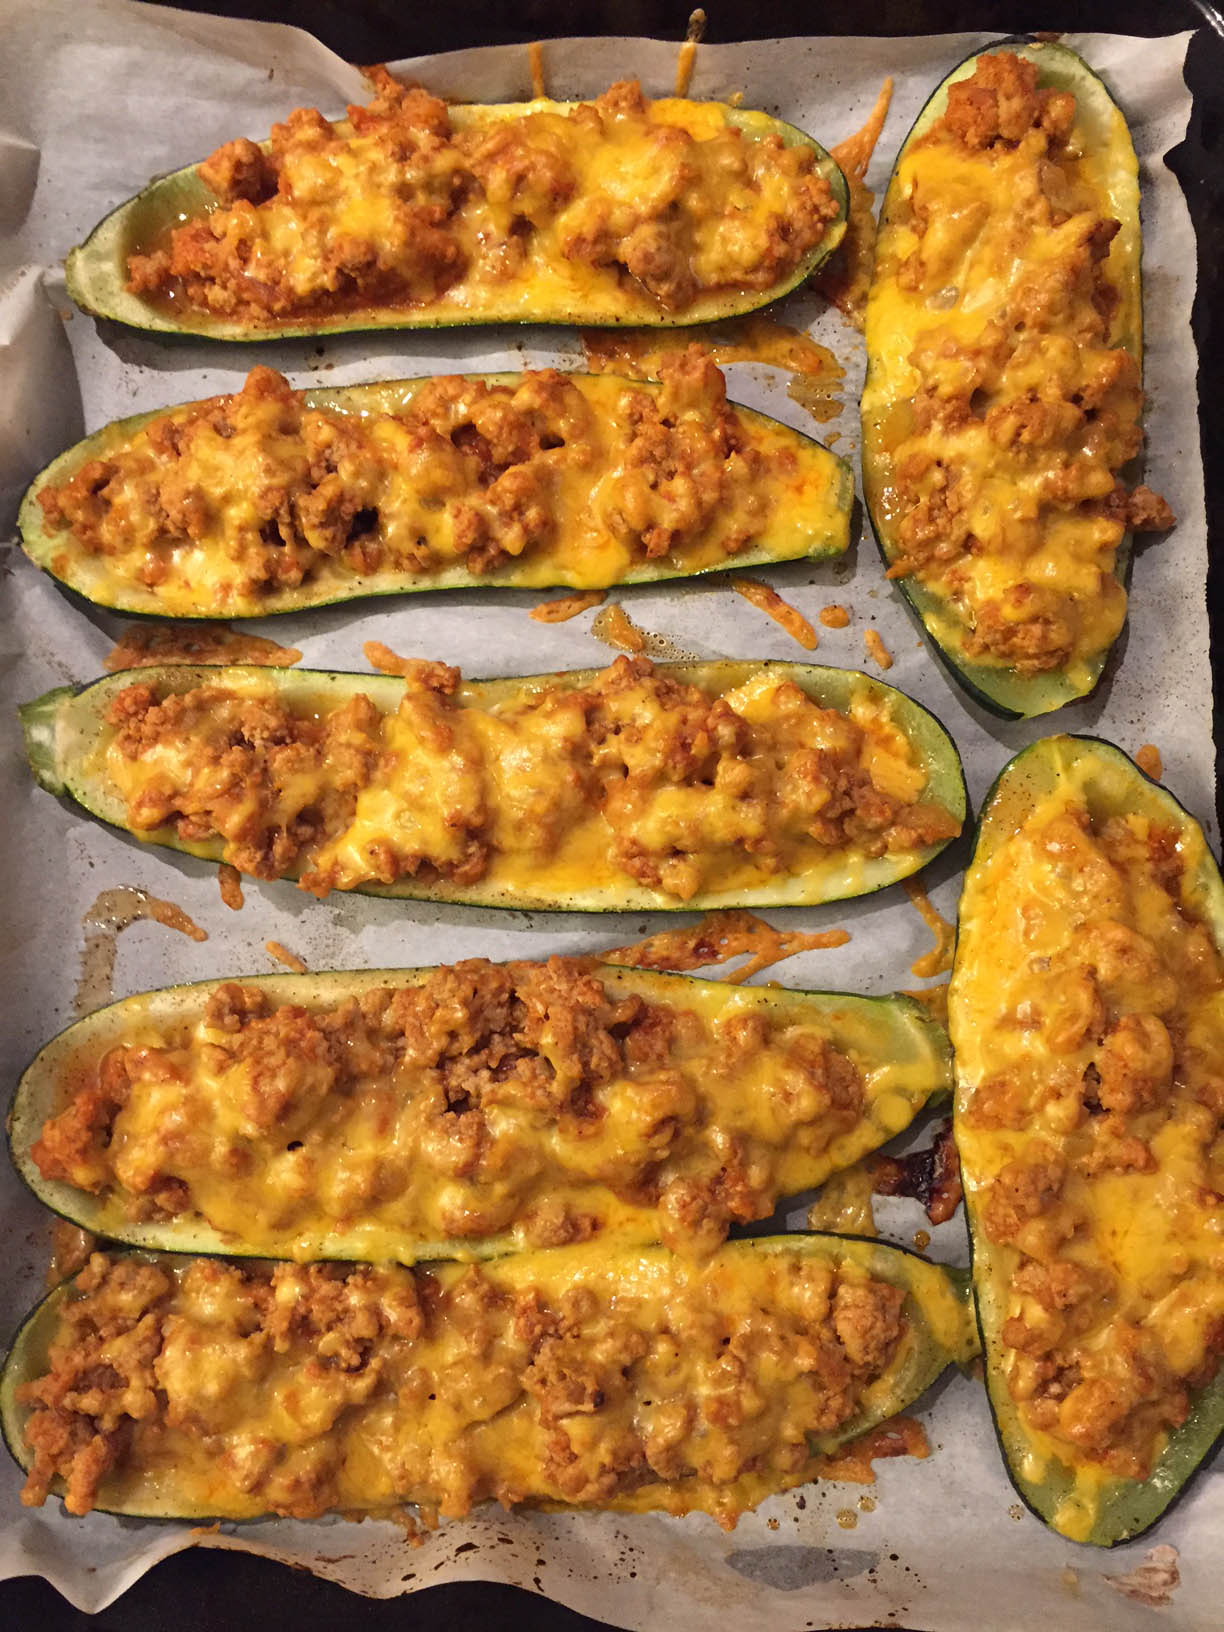 Stuffed Baked Zucchini Boats With Ground Meat And Cheese